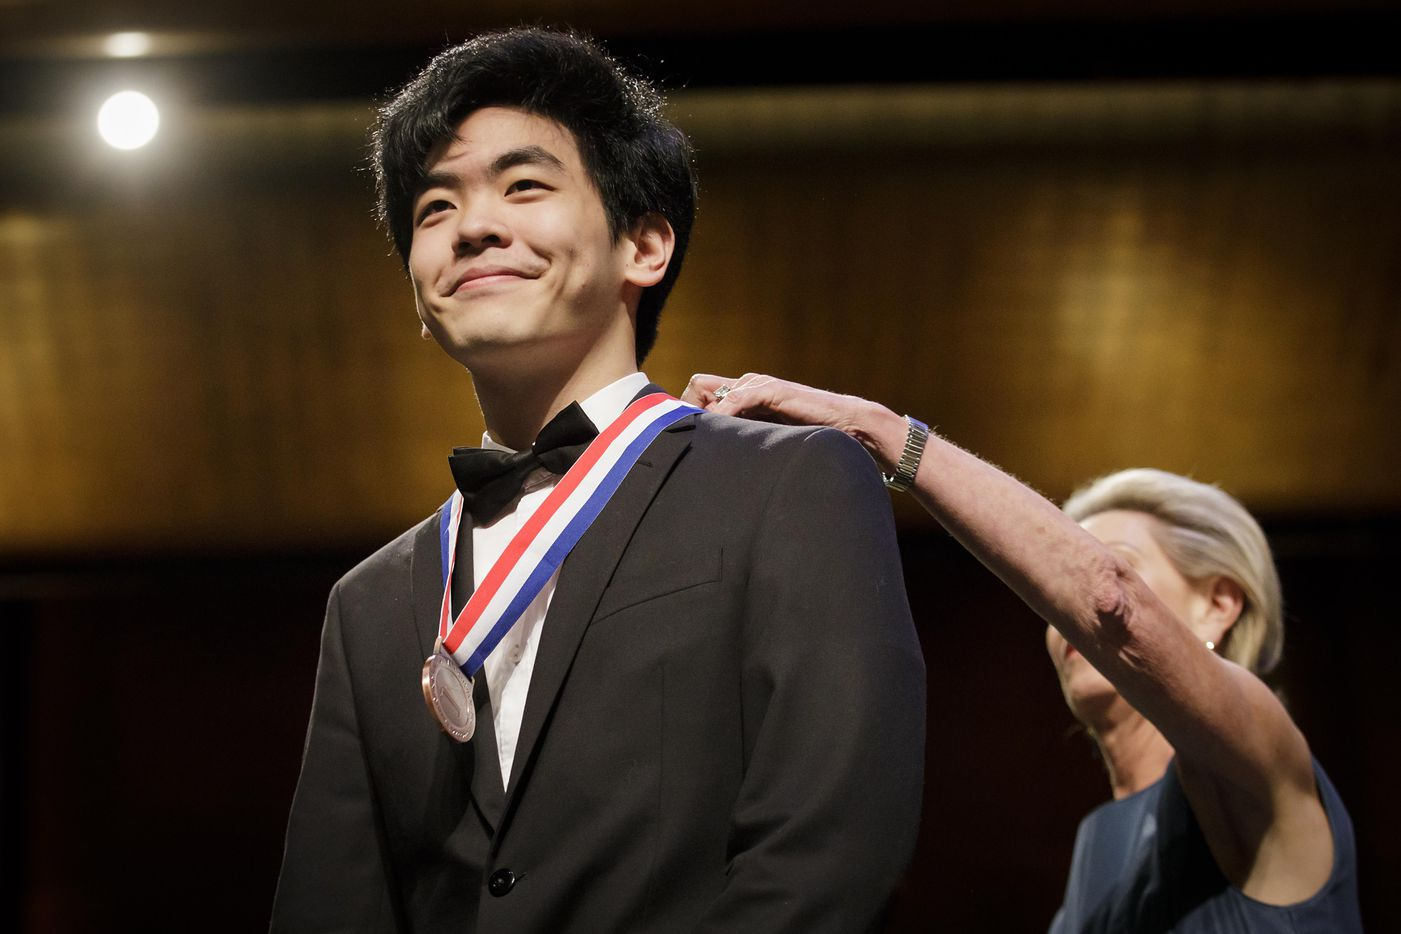 Daniel Hsu of the USA is presented with the bronze medal by Cliburn Chairman of the Board Carla Kemp Thompson during the Van Cliburn International Piano Competition awards ceremony at the Bass Performance Hall in Fort Worth on Saturday, June 10, 2017. (Smiley N. Pool/The Dallas Morning News)